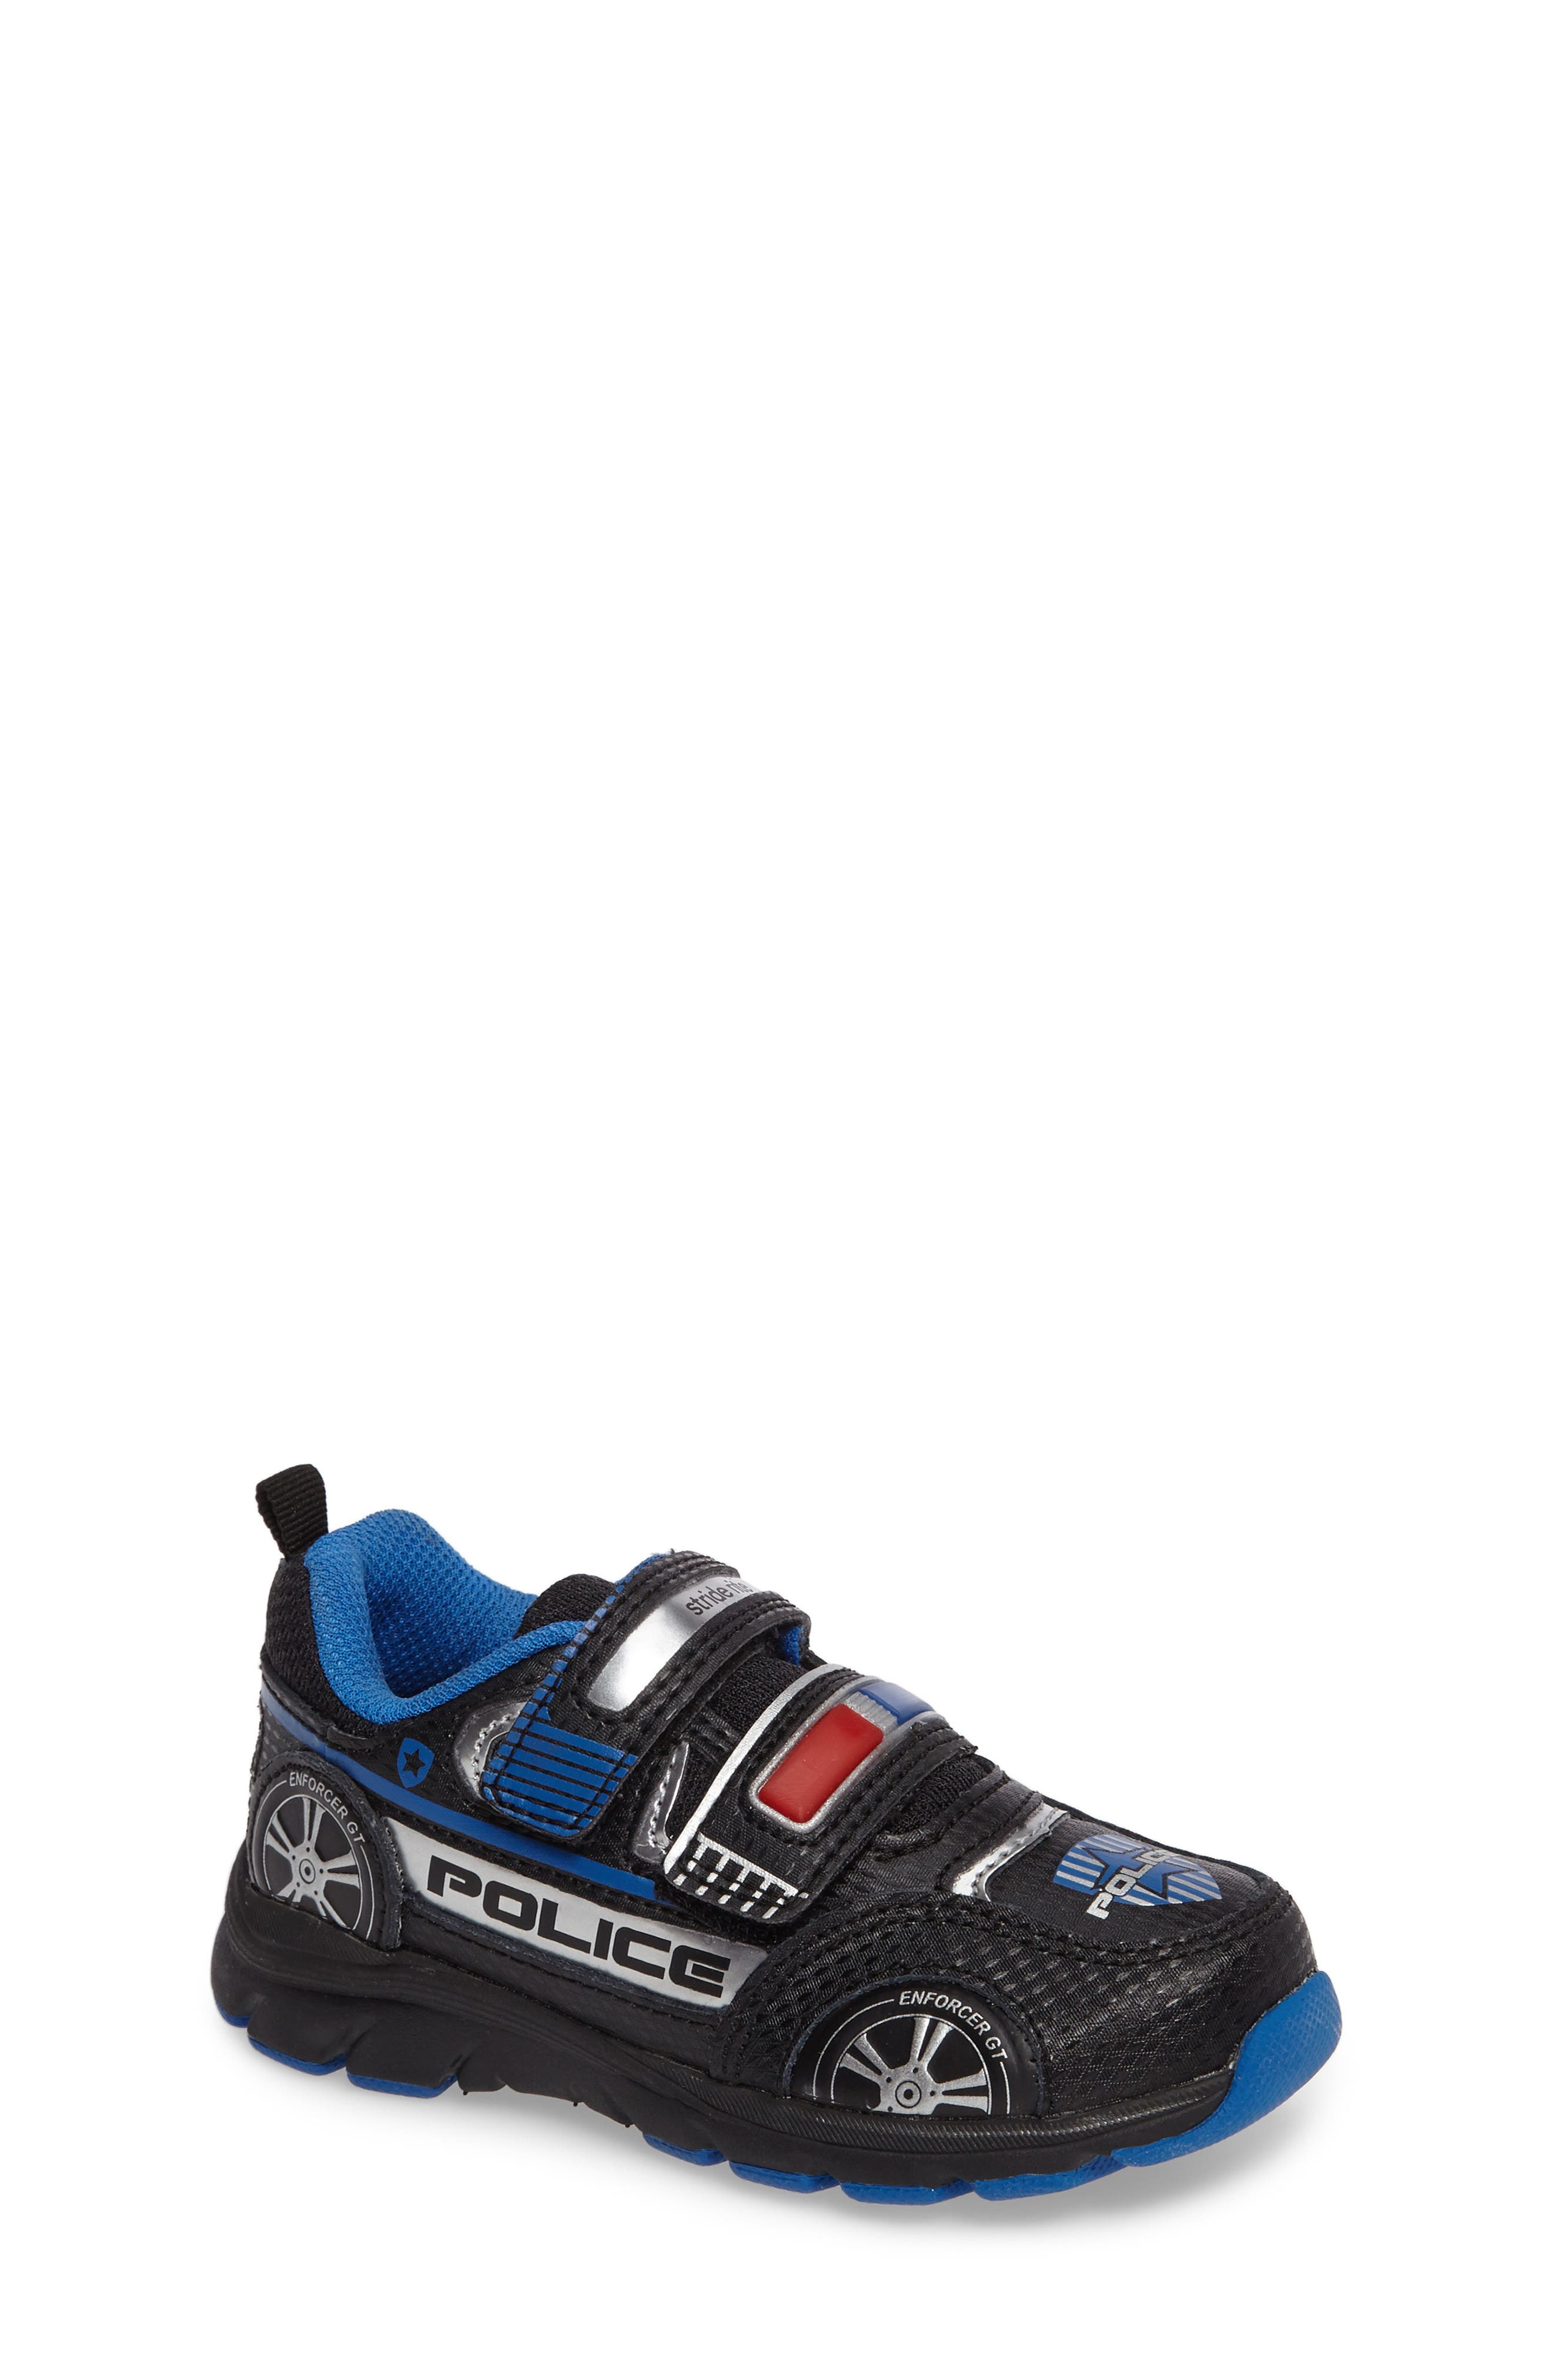 Vroomz Light-Up Police Car Sneaker,                             Main thumbnail 1, color,                             Black/ Silver